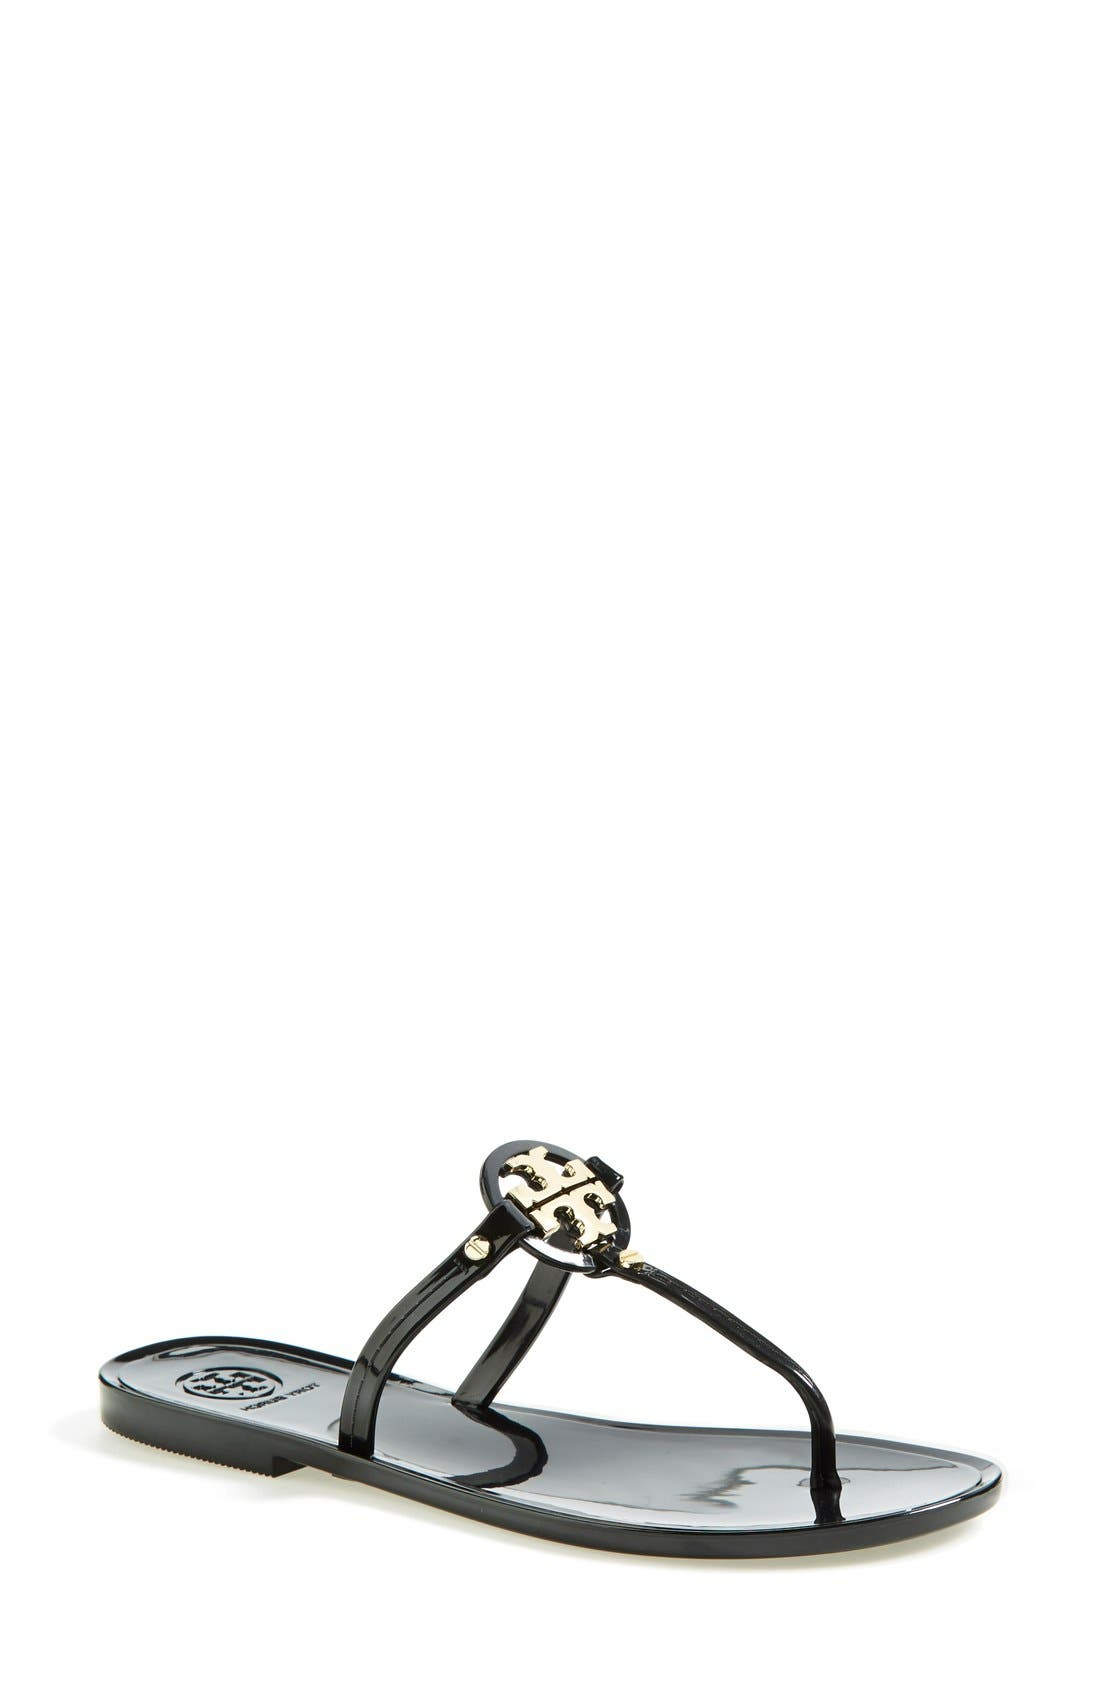 3b384aa46bdf Tory Burch Sandals - Women s